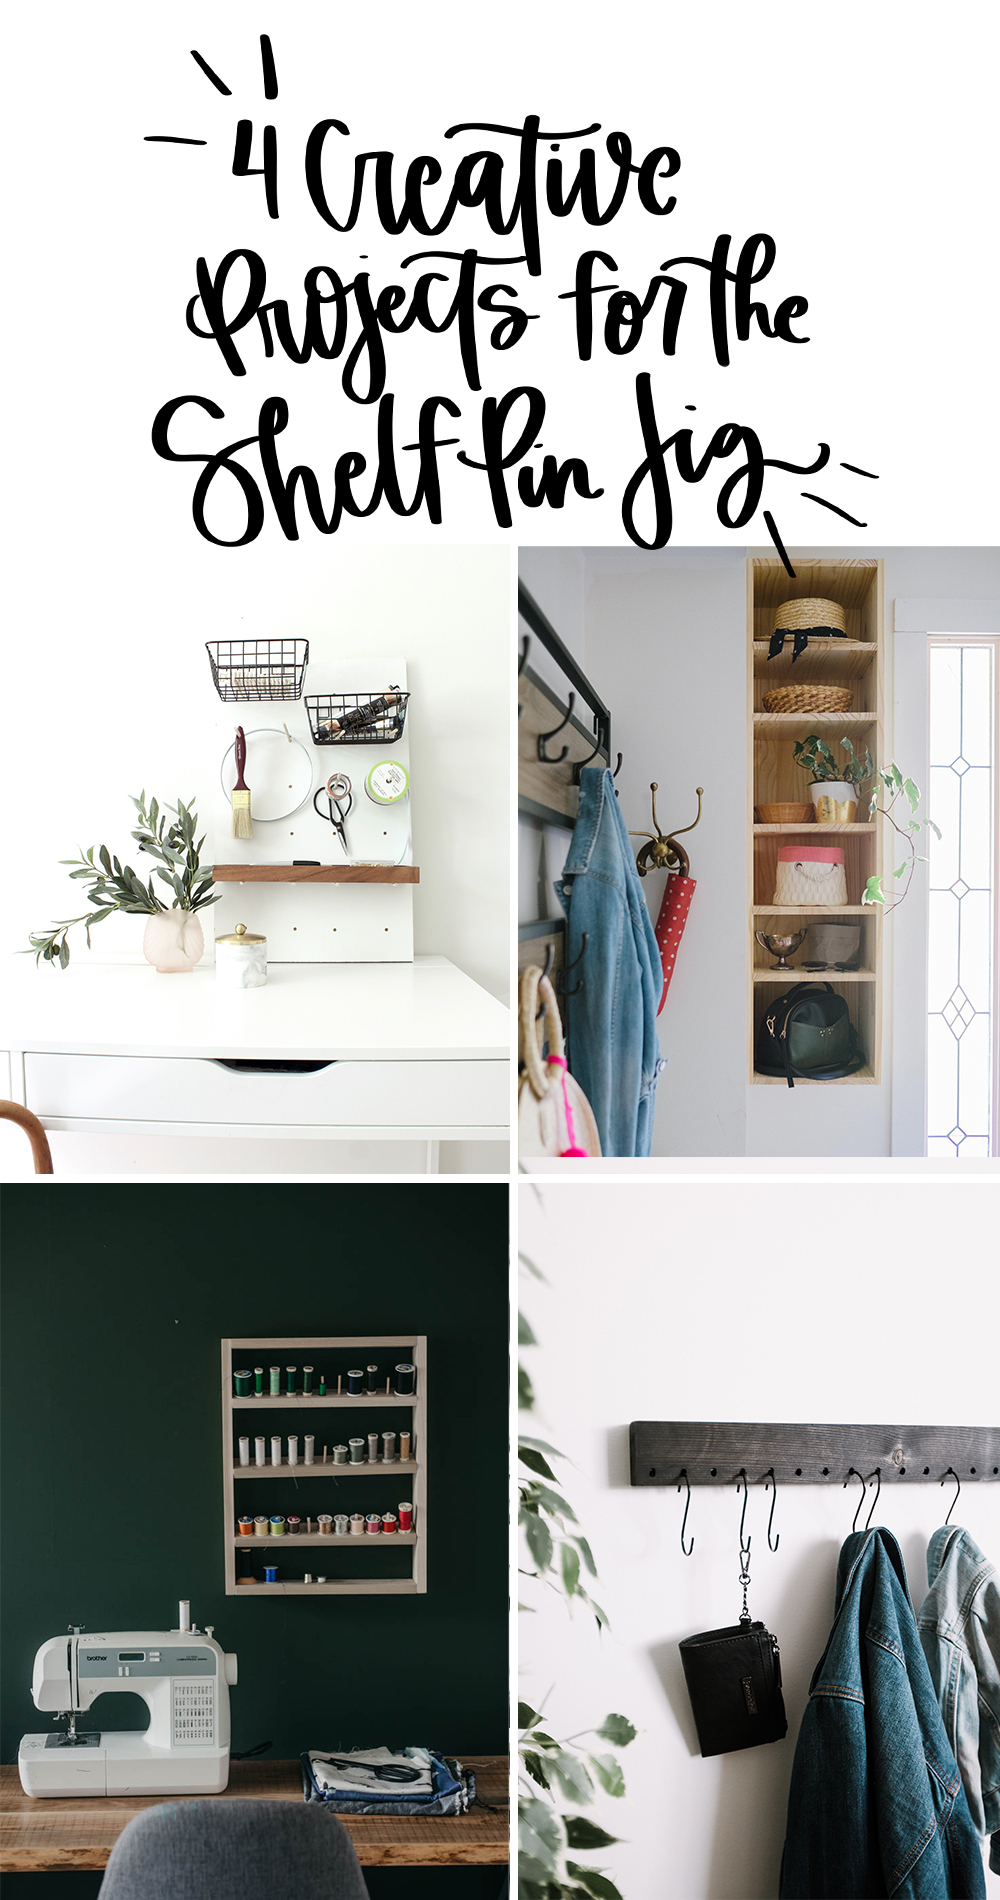 4 cool projects you can build using the Shelf Pin Jig (collage with text overlay)